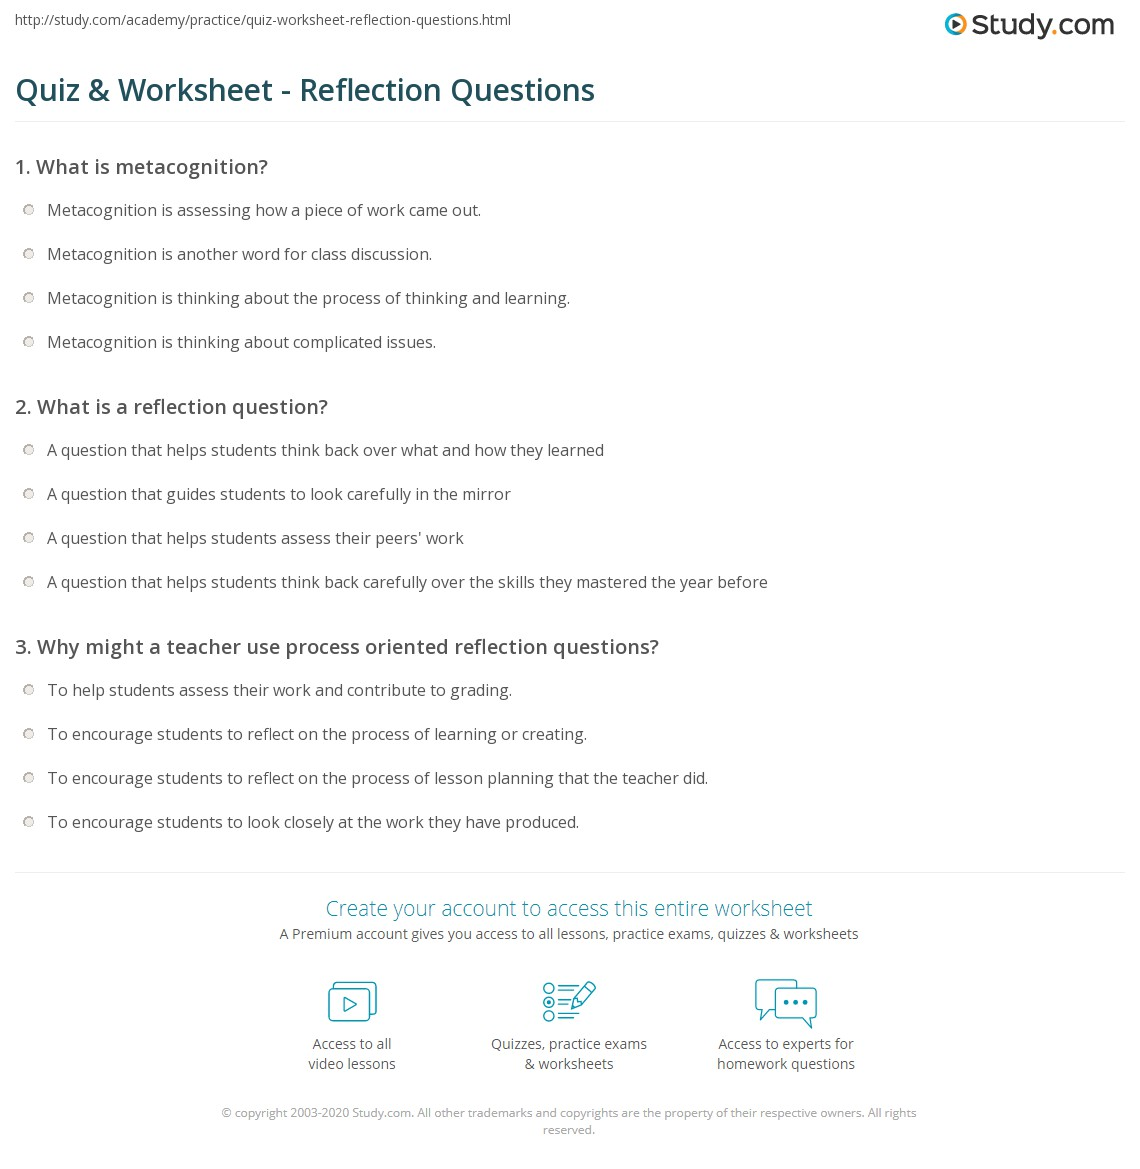 quiz worksheet reflection questions. Black Bedroom Furniture Sets. Home Design Ideas